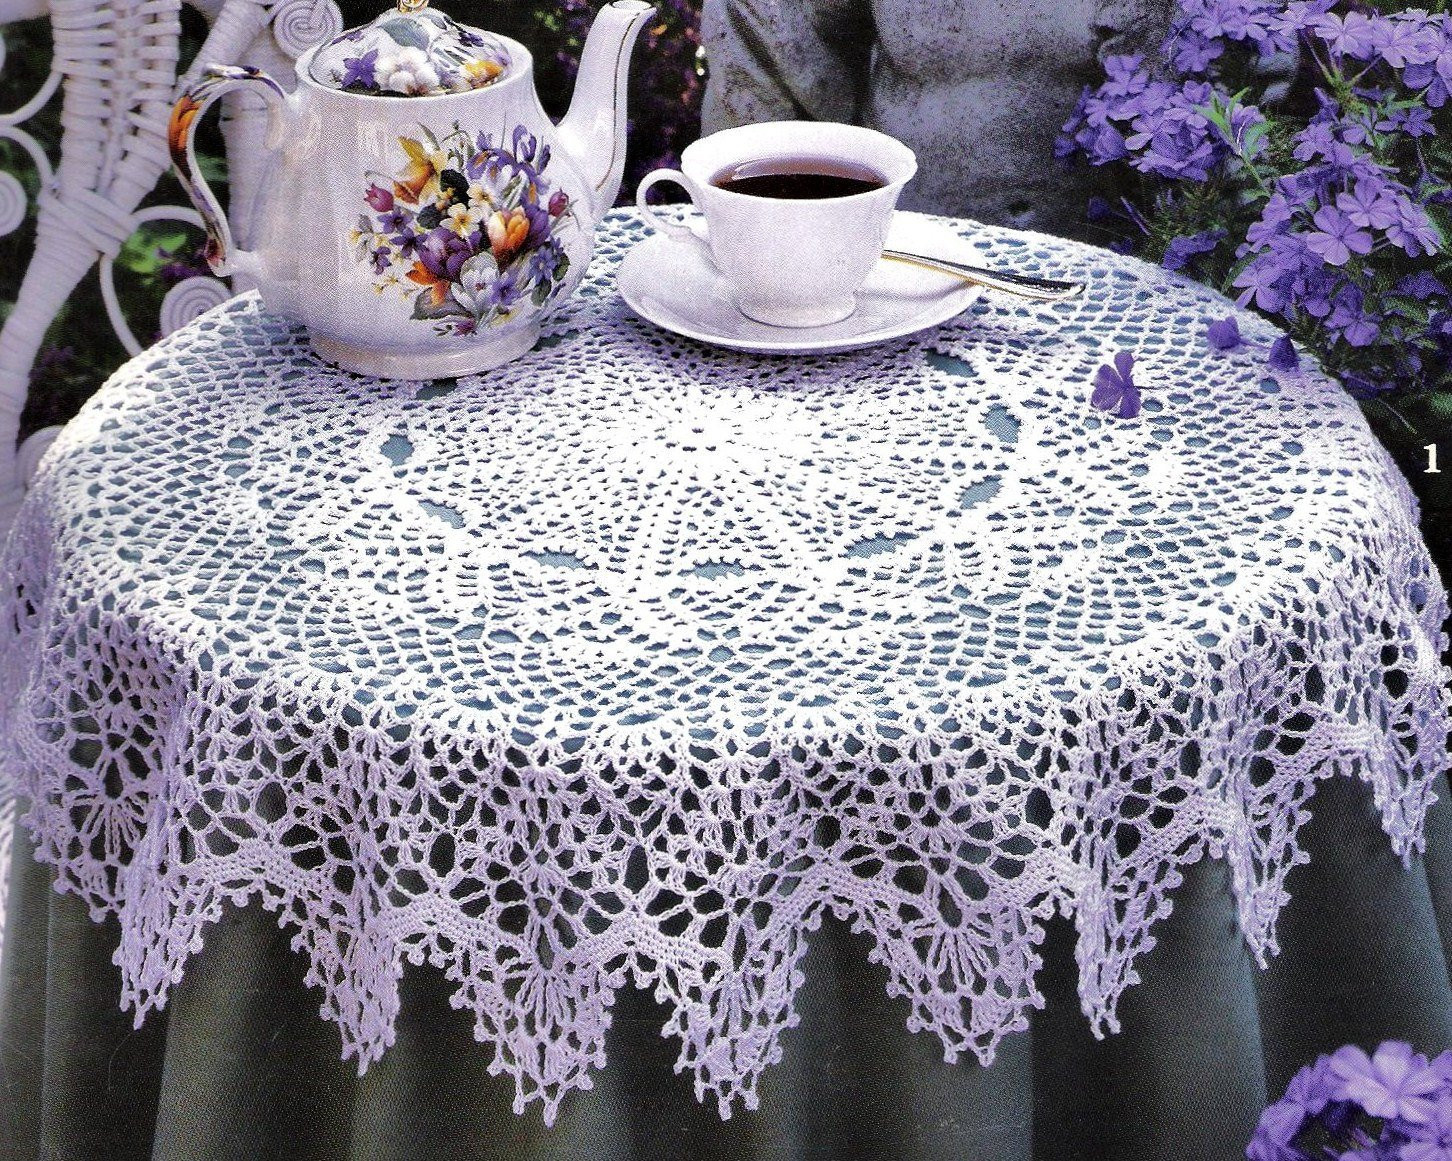 Crochet Round Tablecloth New Round Crochet Tablecloth Patterns Booklet by Stitchyspot Of Beautiful 41 Pictures Crochet Round Tablecloth